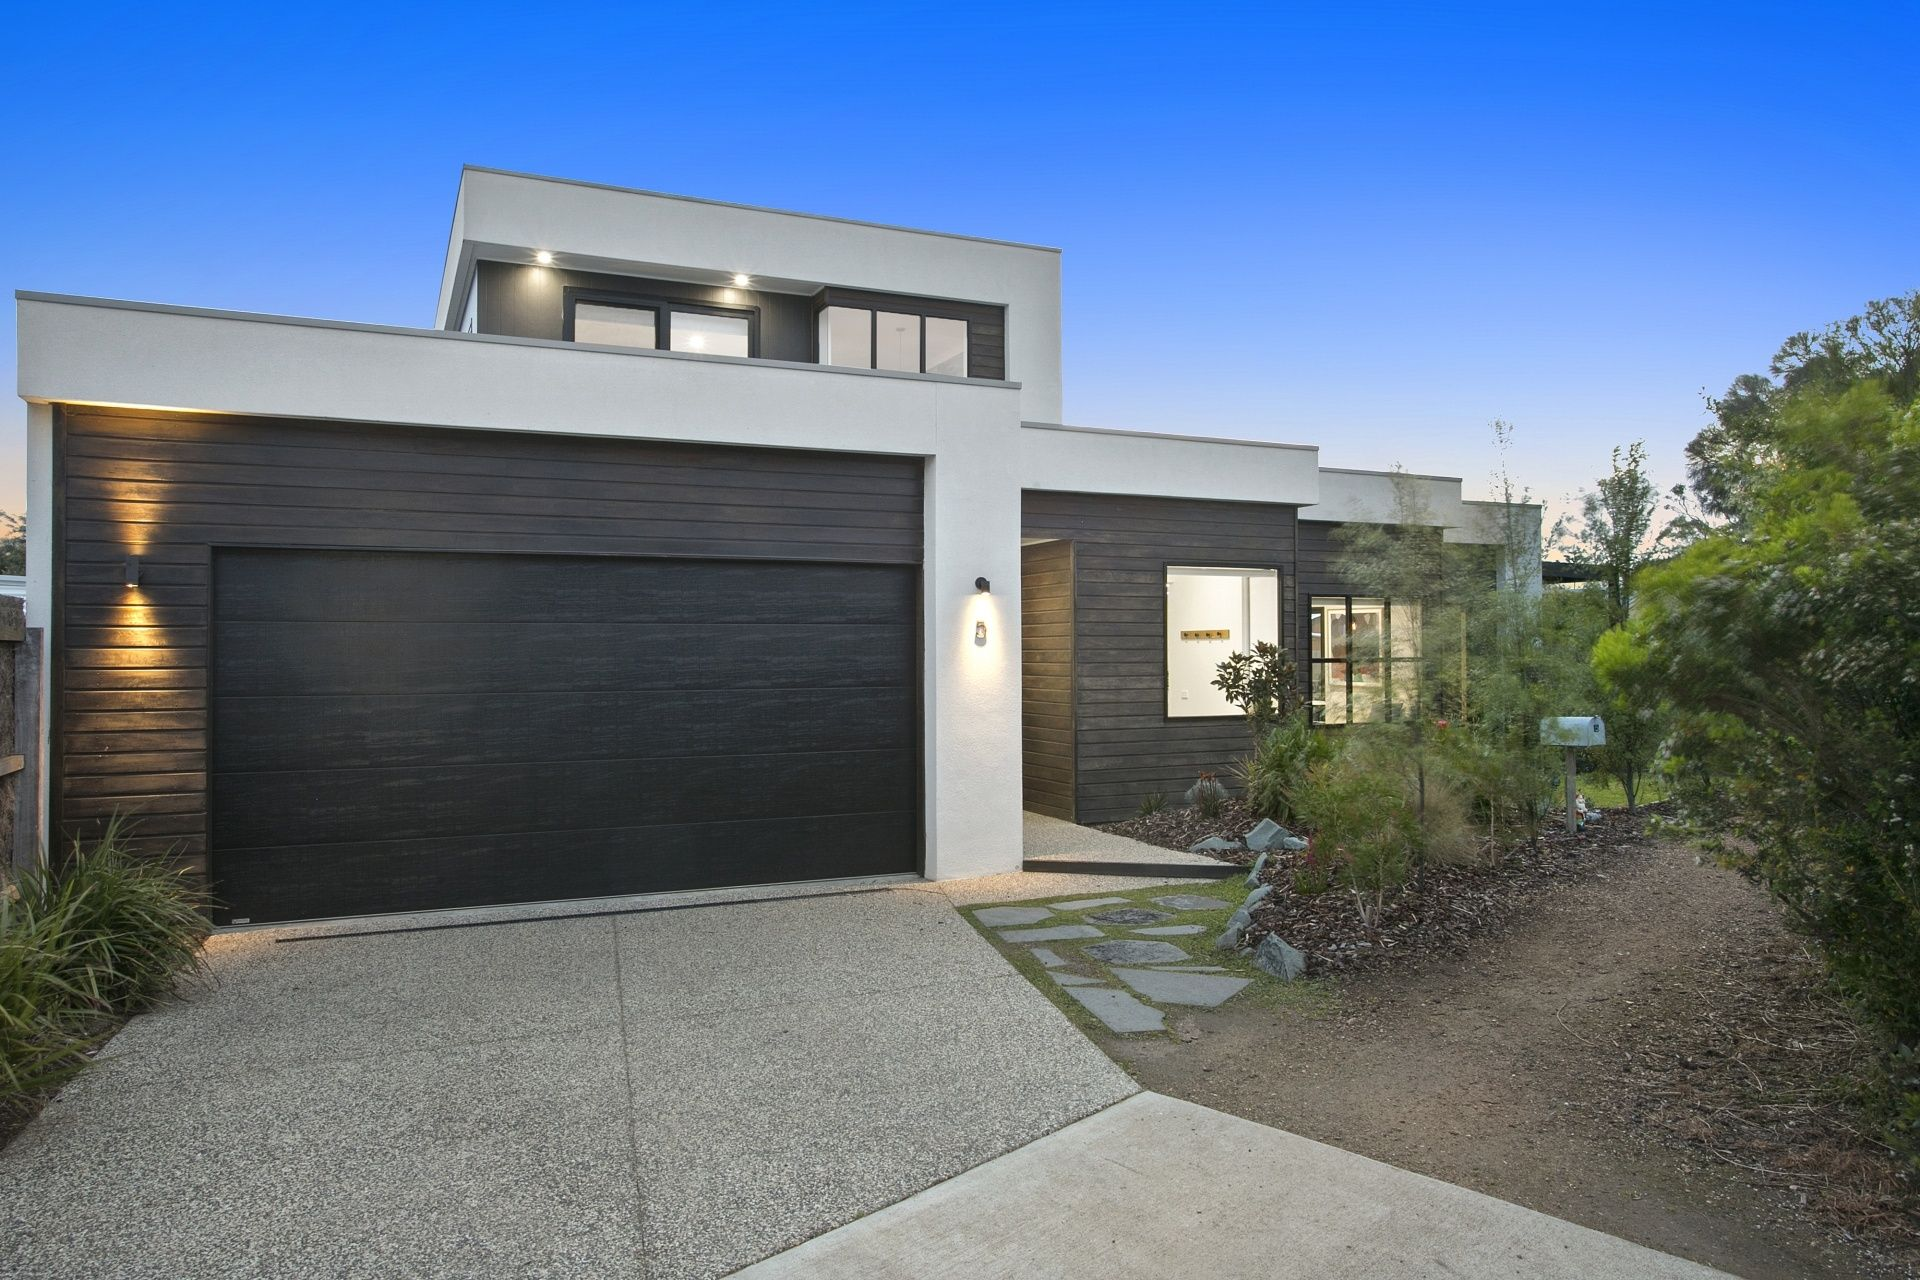 Sold property undisclosed for 5 barwon terrace barwon for 123 the terrace ocean grove